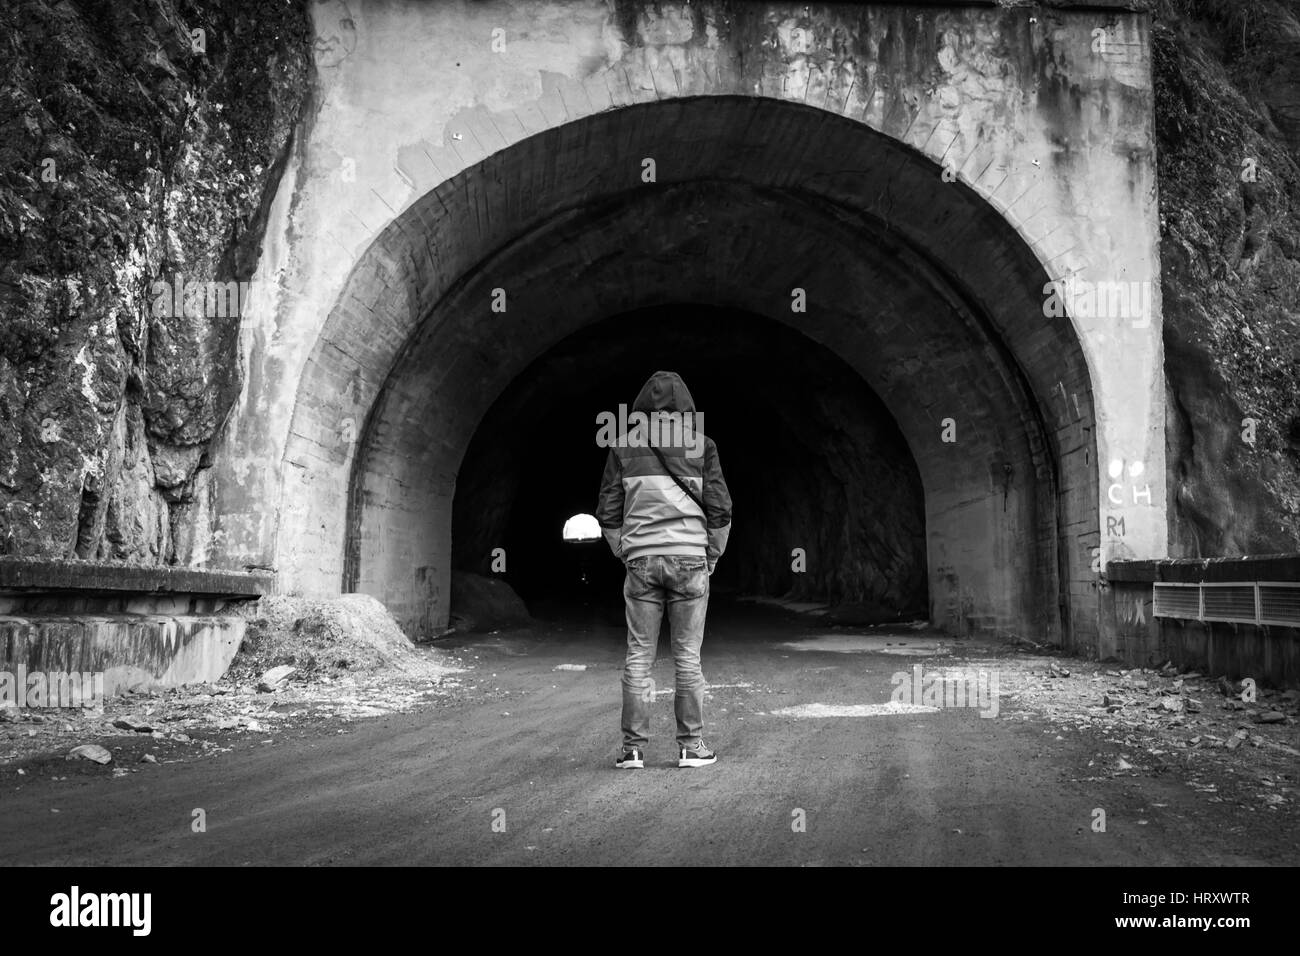 Man entry in a tunnel - Stock Image